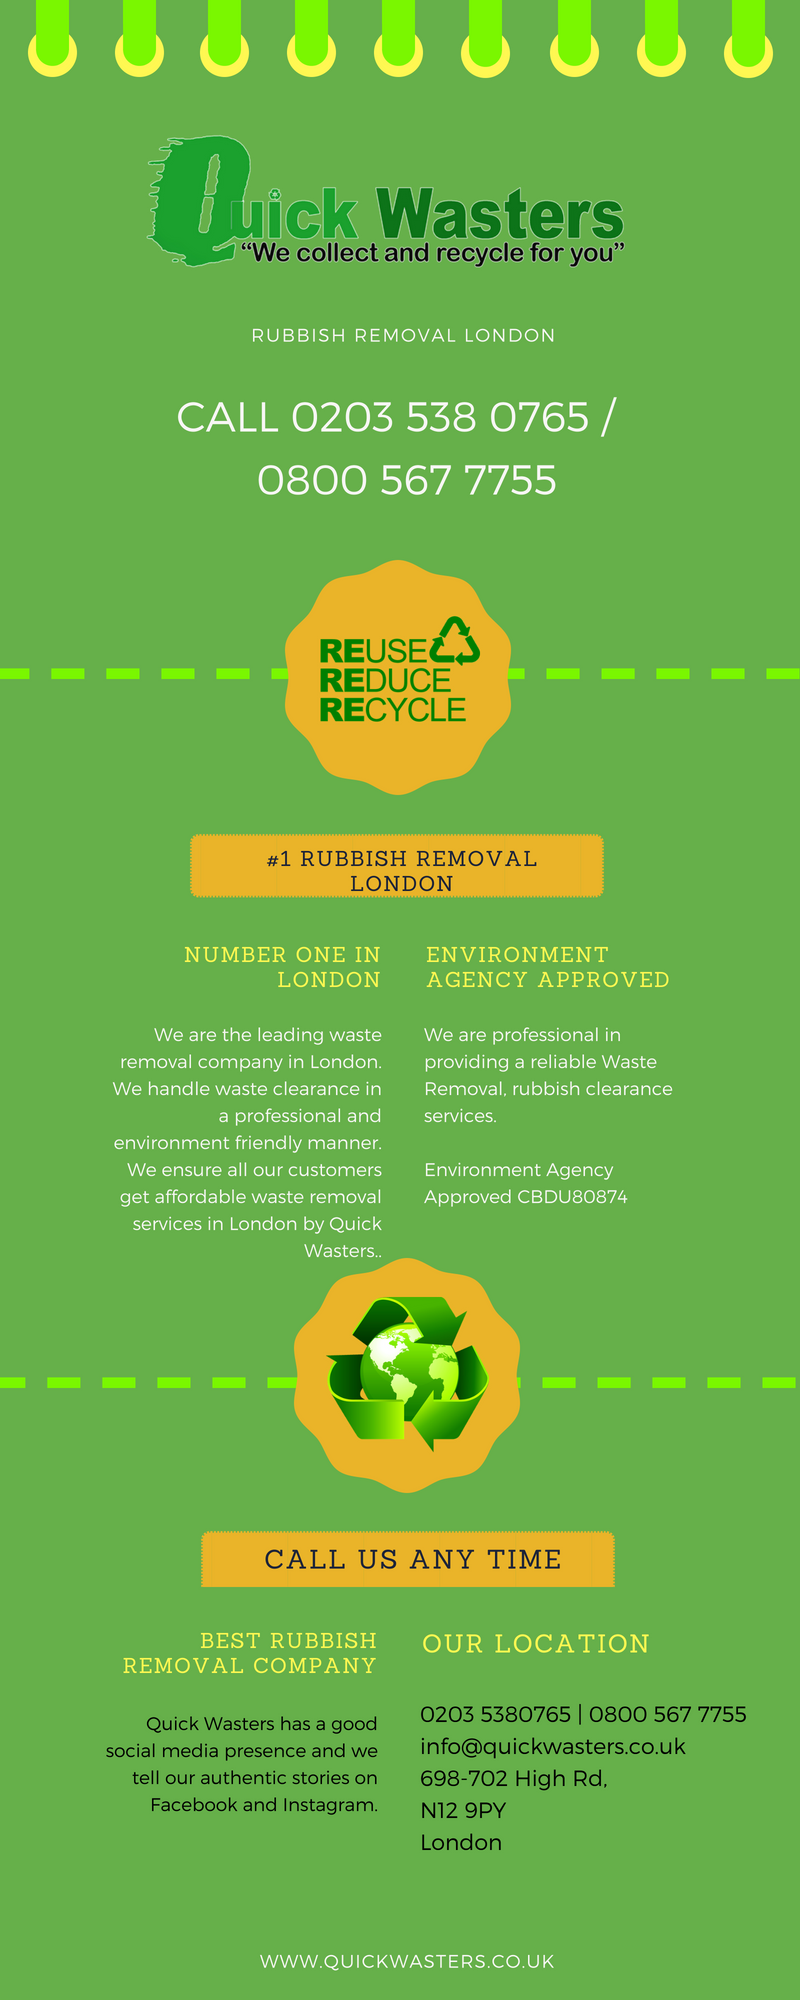 QuickWasters – Environment Agency Approved Rubbish Removal Company